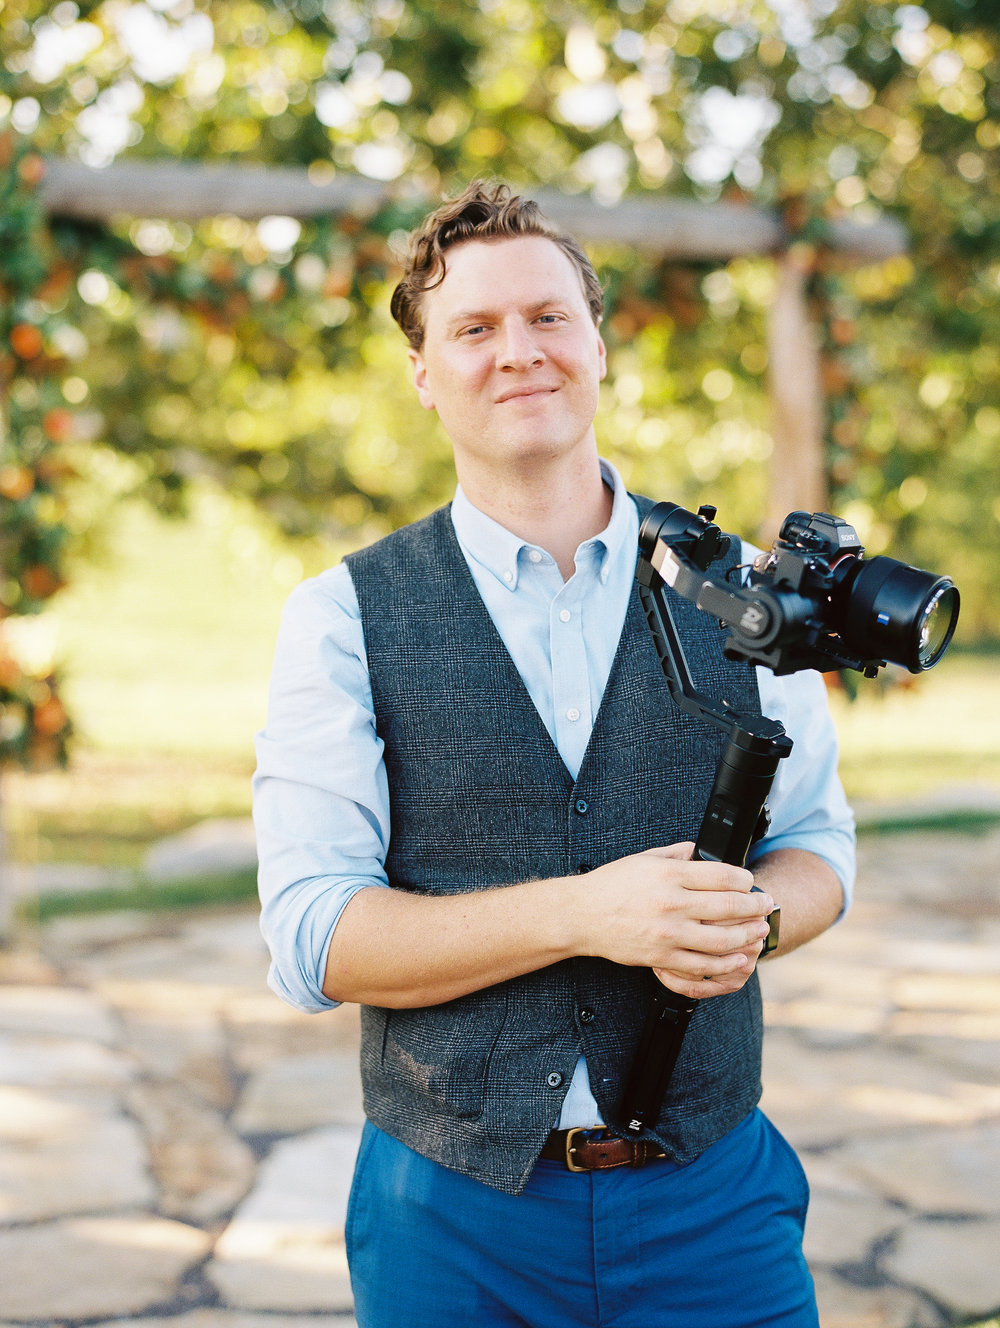 THIS IS JOSH - my husband and videographer - Josh, my husband of almost 13 years, has recently joined me in action and offers beautiful wedding videos he films right along side me. It's the best! I love that we know how to work around each other so well on a wedding day and that our work style flows together seamlessly. He loves story telling and creating beautiful wedding films for our couples.Josh loves music, a great movie, dance parties with our two little ones, podcasts, audiobooks, basketball (he's a little obsessed with Lebron James), live bands, good shoes and takes longer than me to fix his hair. ;) We love family movie nights and going on adventures together. We have been working for a few years fixing up our house and Josh takes care of all the handyman projects including recently gutting and remodeling one of our 70's bathrooms. We've been loving working as a team serving our couples and documenting one of the most important days of their lives!Our goal is to serve our couples as a team and work fluidly together on your wedding day. I love the fact that we know each other so well and know the ins and outs of a wedding day to move around each other as a team documenting each and everyone our couples days in a beautiful way. Josh works to tell your story in a thoughtful, meaningful and beautiful way. A writer at heart he loves the story behind everything and every detail.